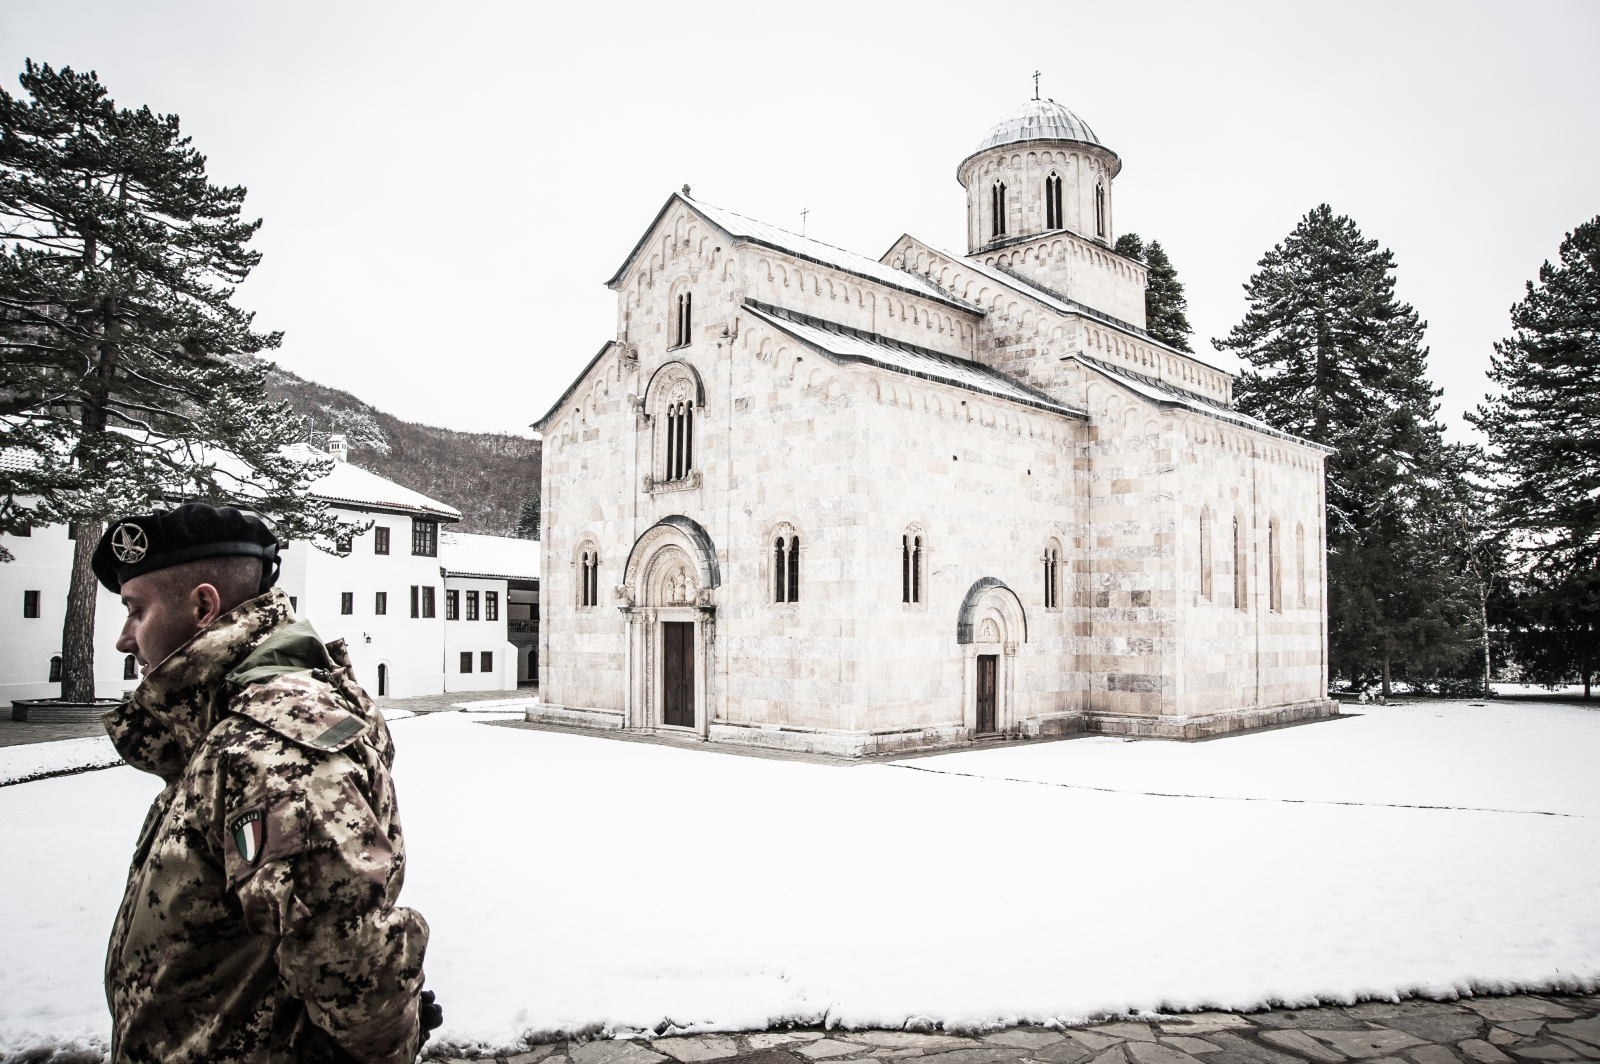 A KFOR soldier patrols the Serbian Orthodox monastery of Visoki Dečani. Since 1999, the Multinational Battle Group West is responsible for the daily supervision of the site which plays an important symbolic-religious role in an Albanian majority territory.